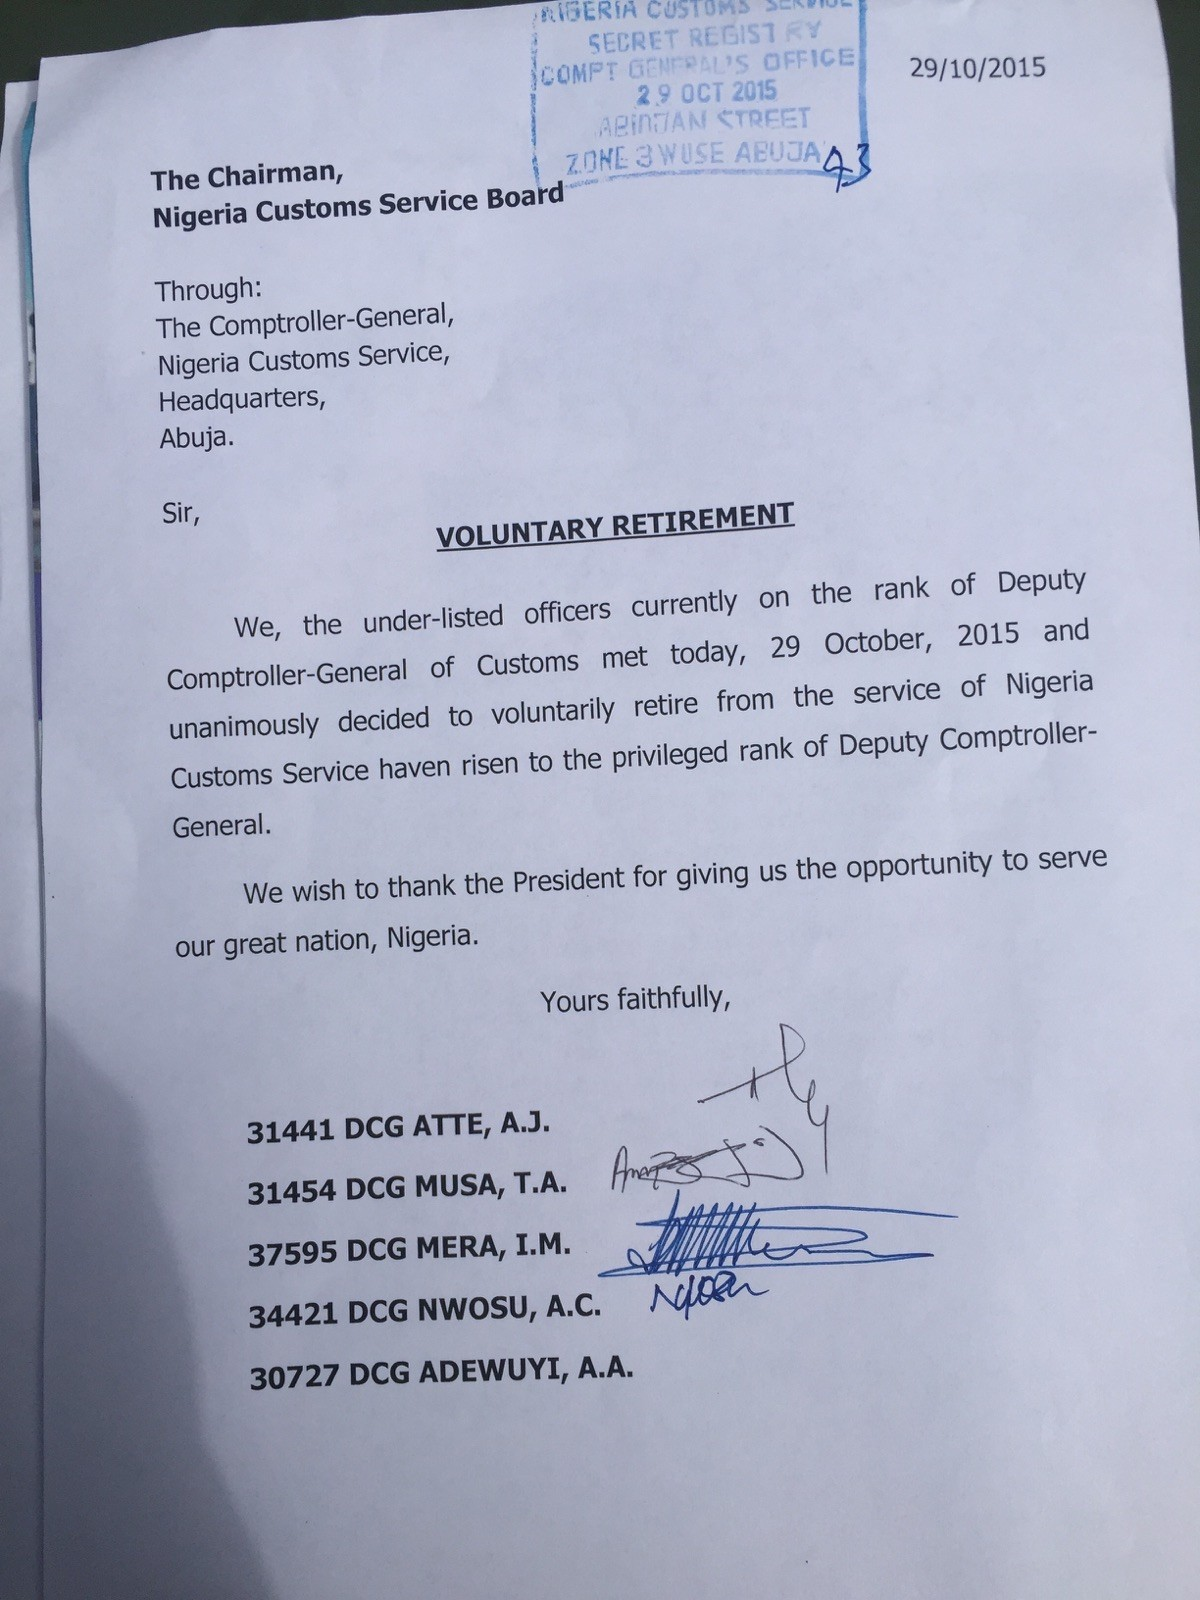 breaking news dcgs of the ian customs service tender breaking news 5 dcgs of the ian customs service tender jointretirement letter to cg